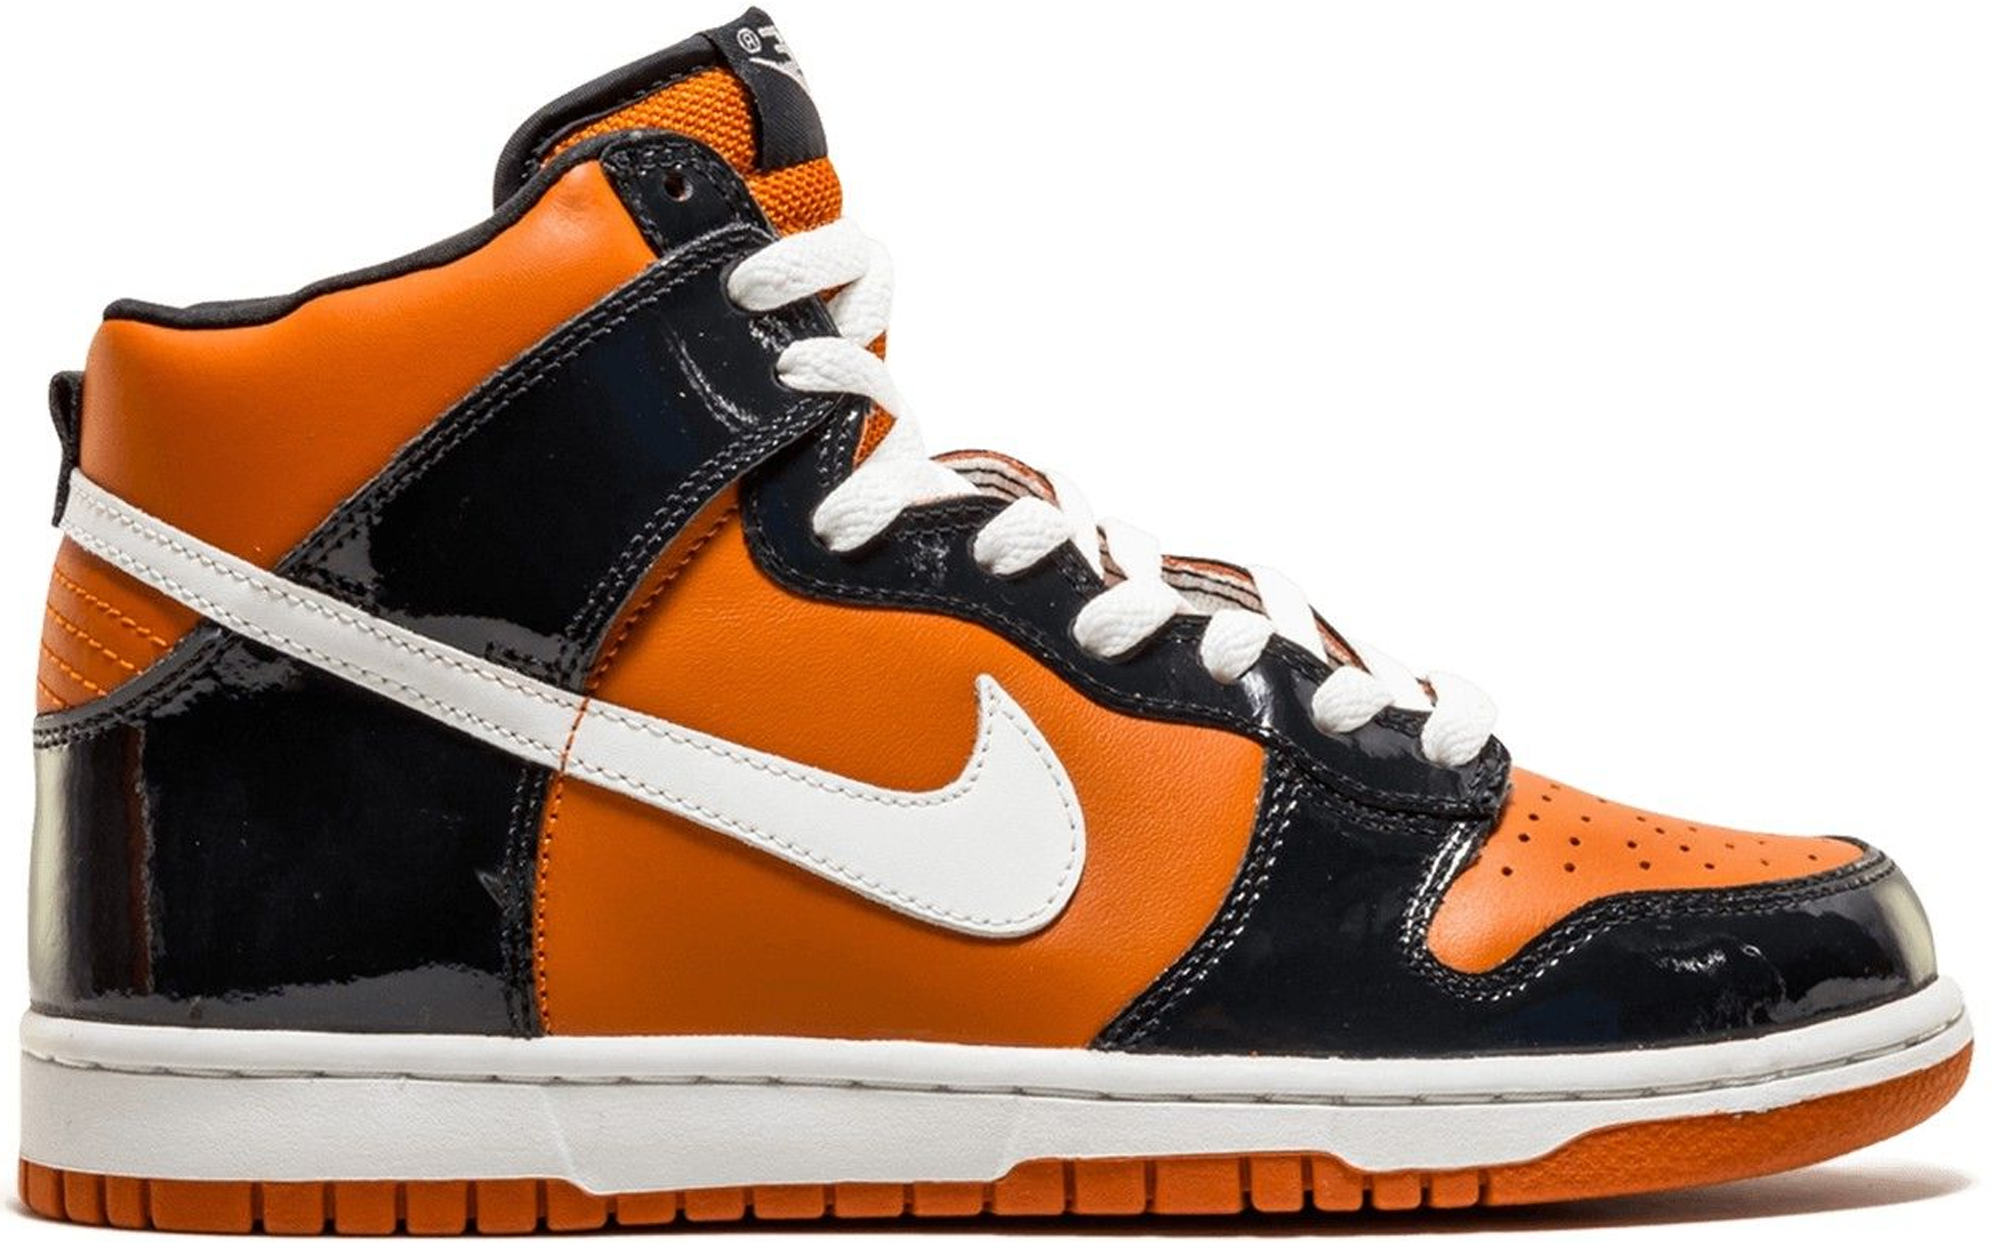 dunk high mesa orange rh stockx com Best Basketball Logos Women's Basketball Logo